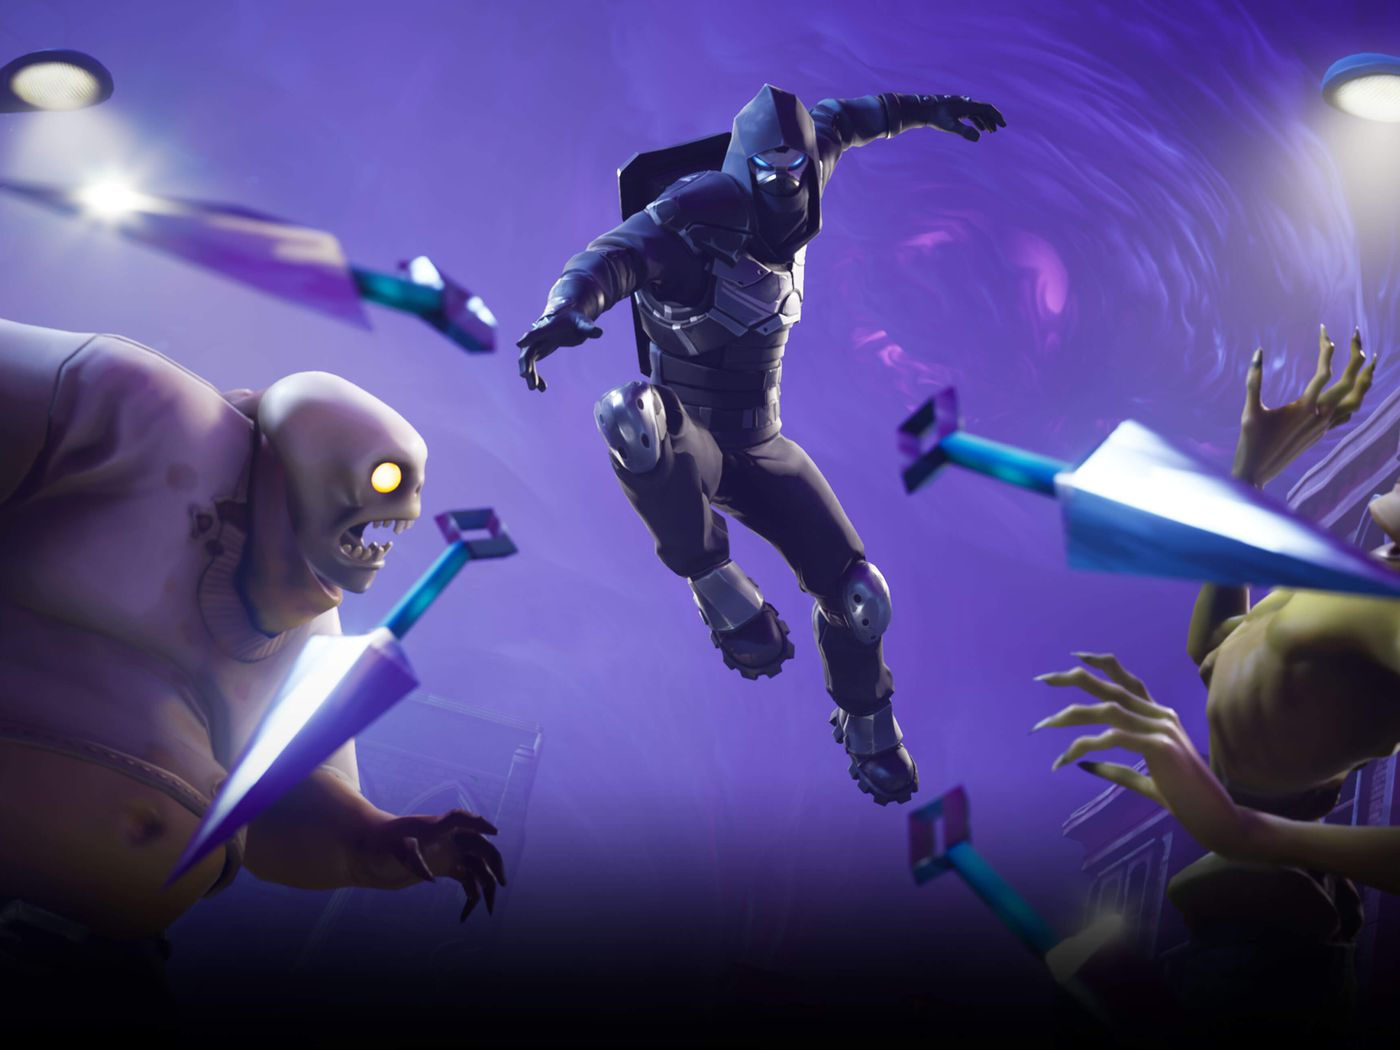 How Long Does Fortnite Take Fortnite S Save The World Finally Leaves Early Access No Plans To Go Free To Play Polygon